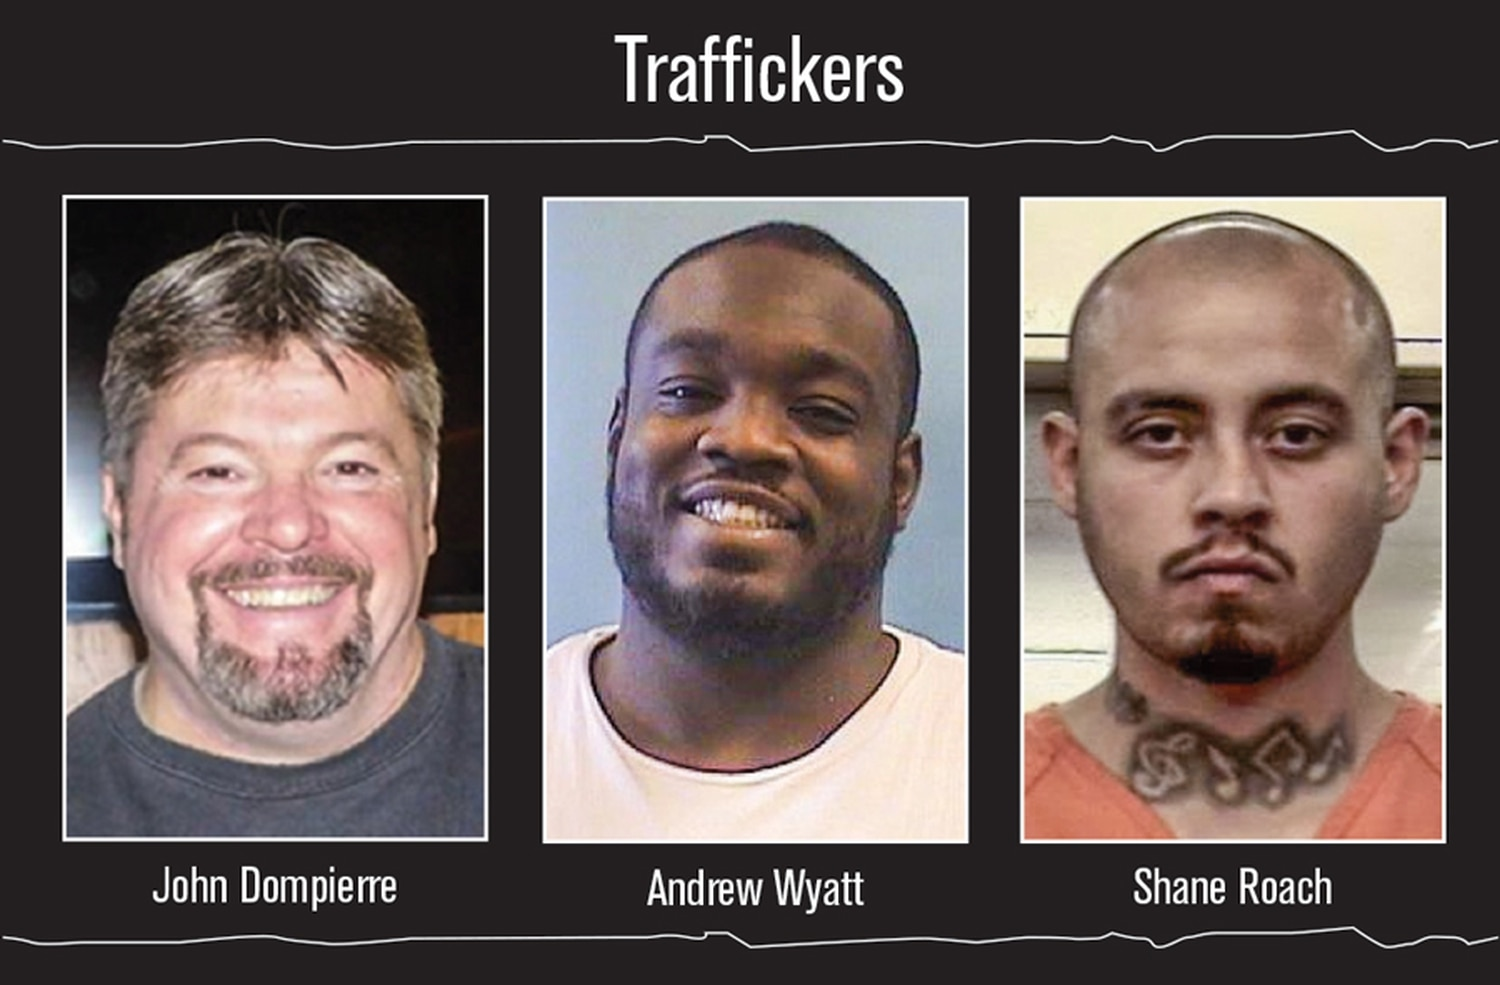 John Dompierre and Andrew Wyatt are accused of forcing women into sex trafficking in Santa Fe. The men are among eight people indicted for the crime last year and awaiting trail. Shane Roach has already been convicted.